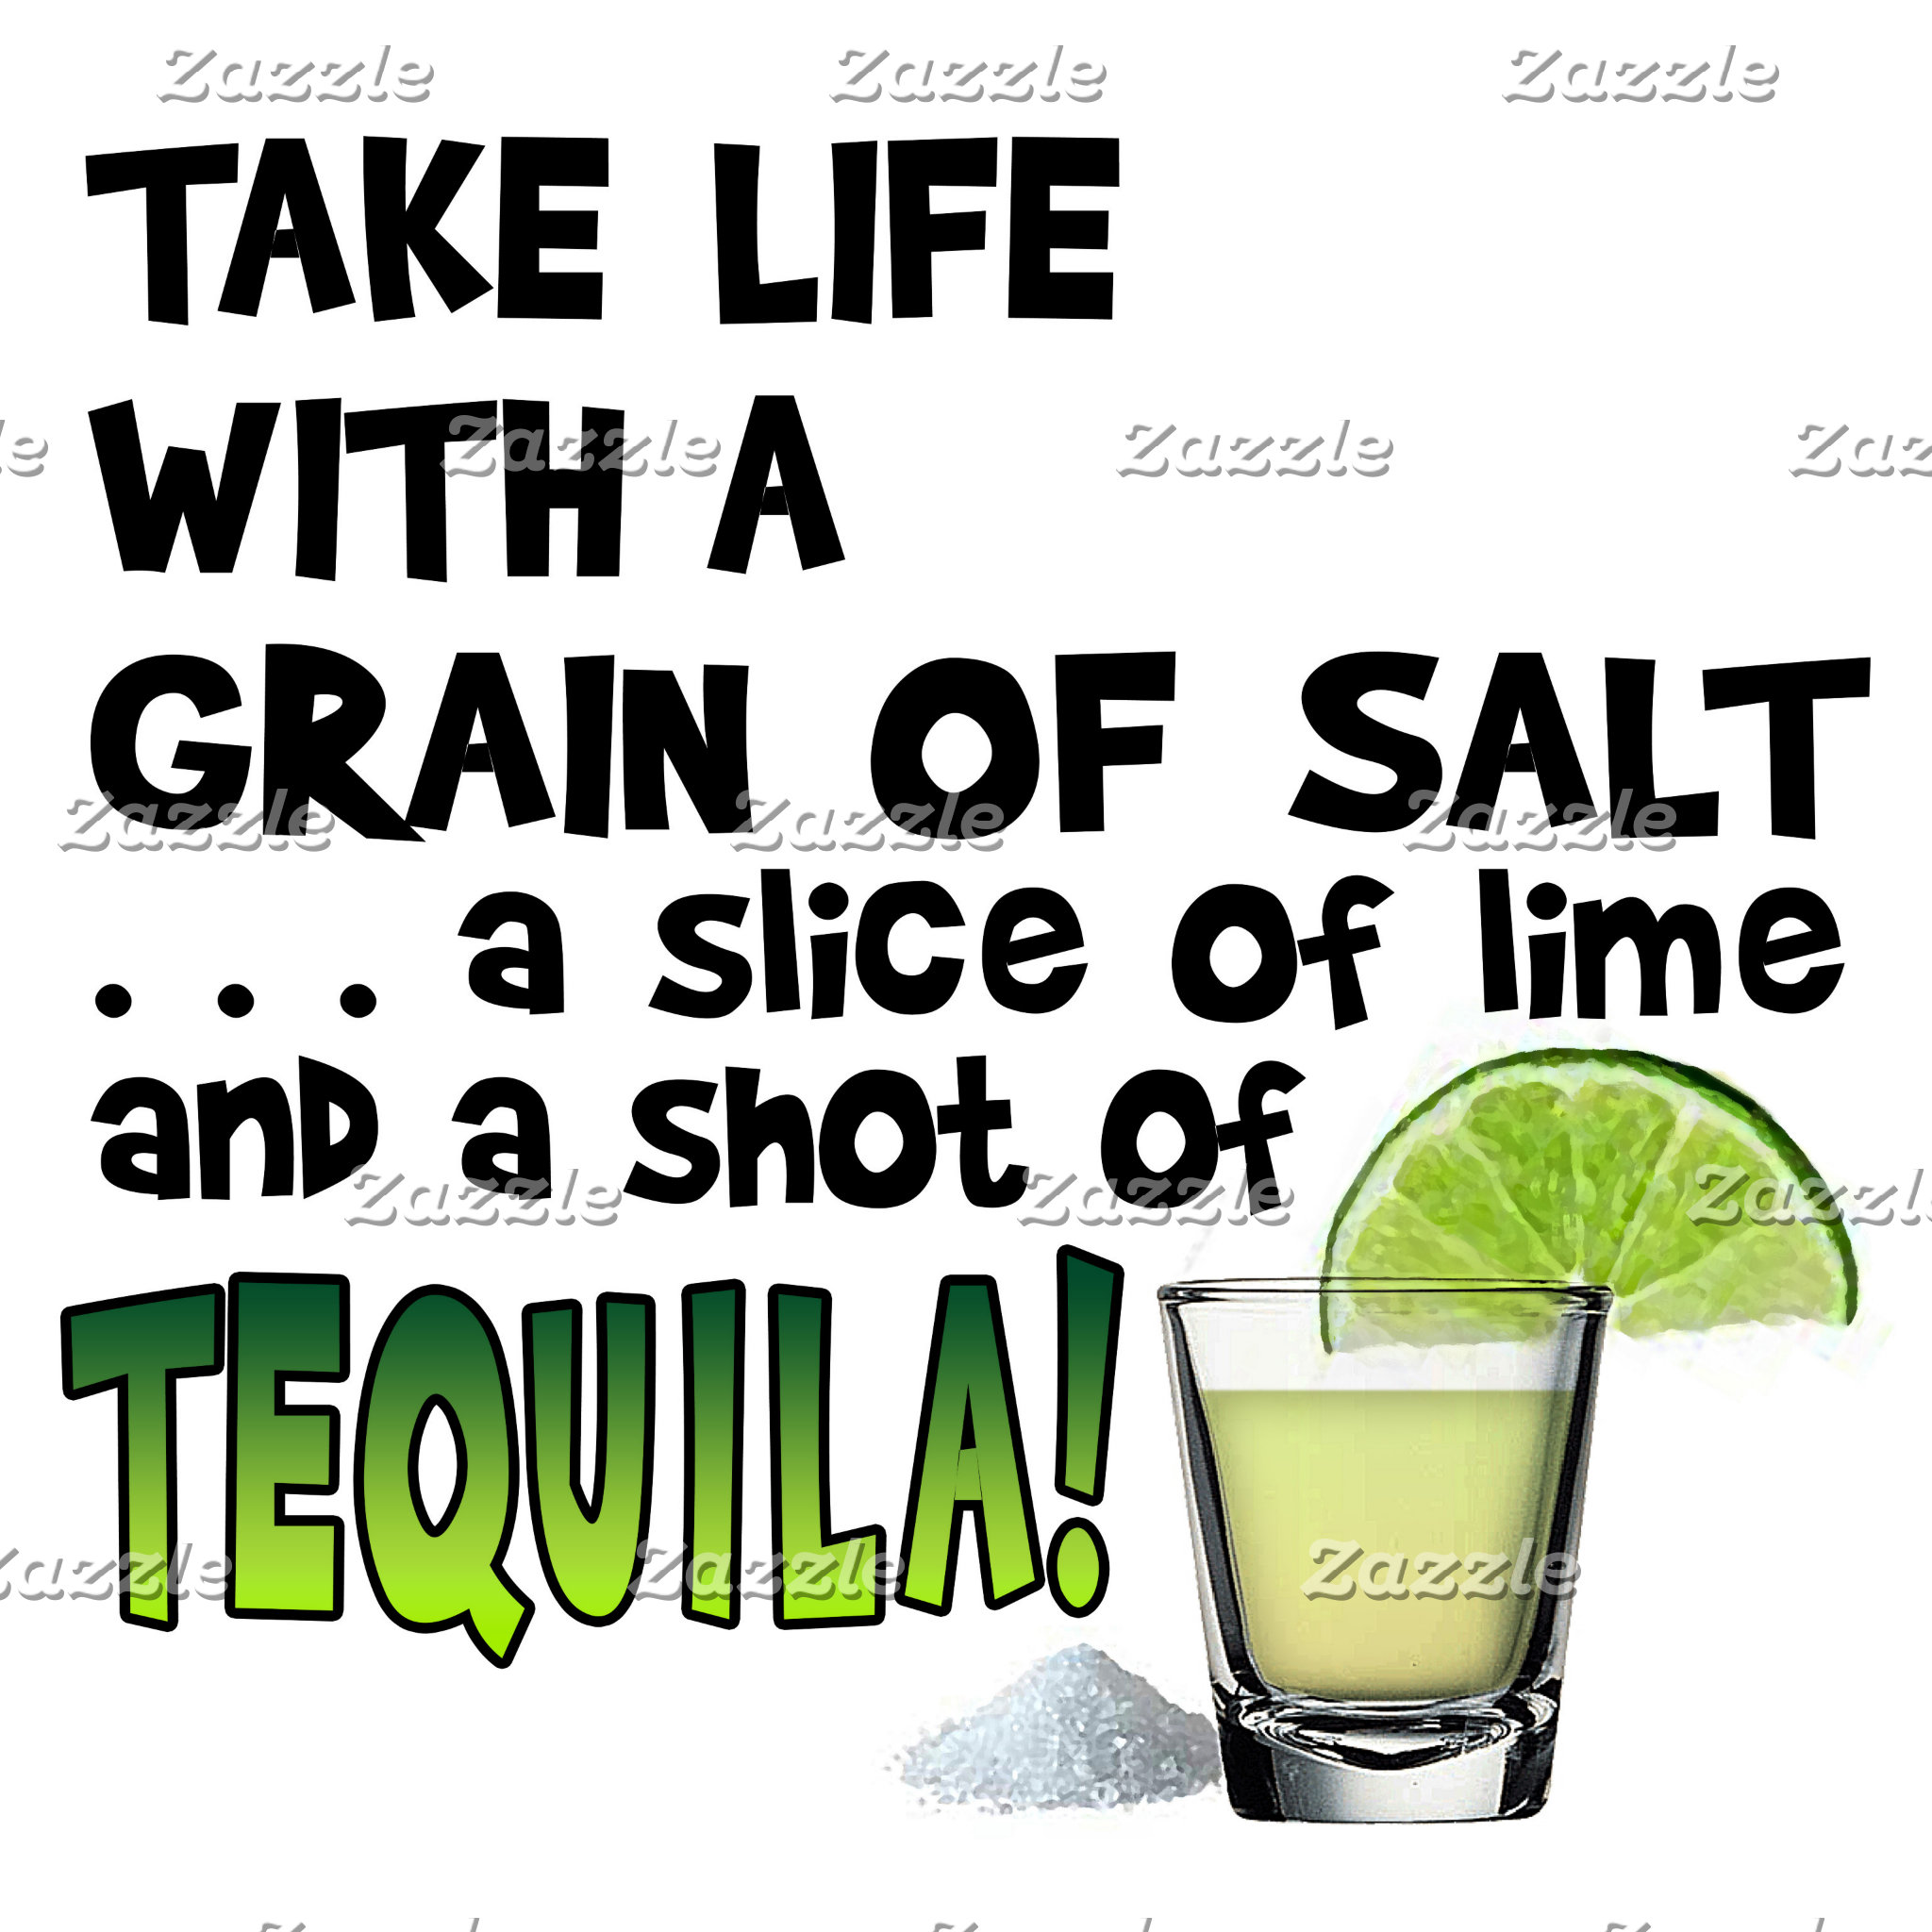 ap3 Life, Salt, Lime, TEQUILA! Cocktail Humor